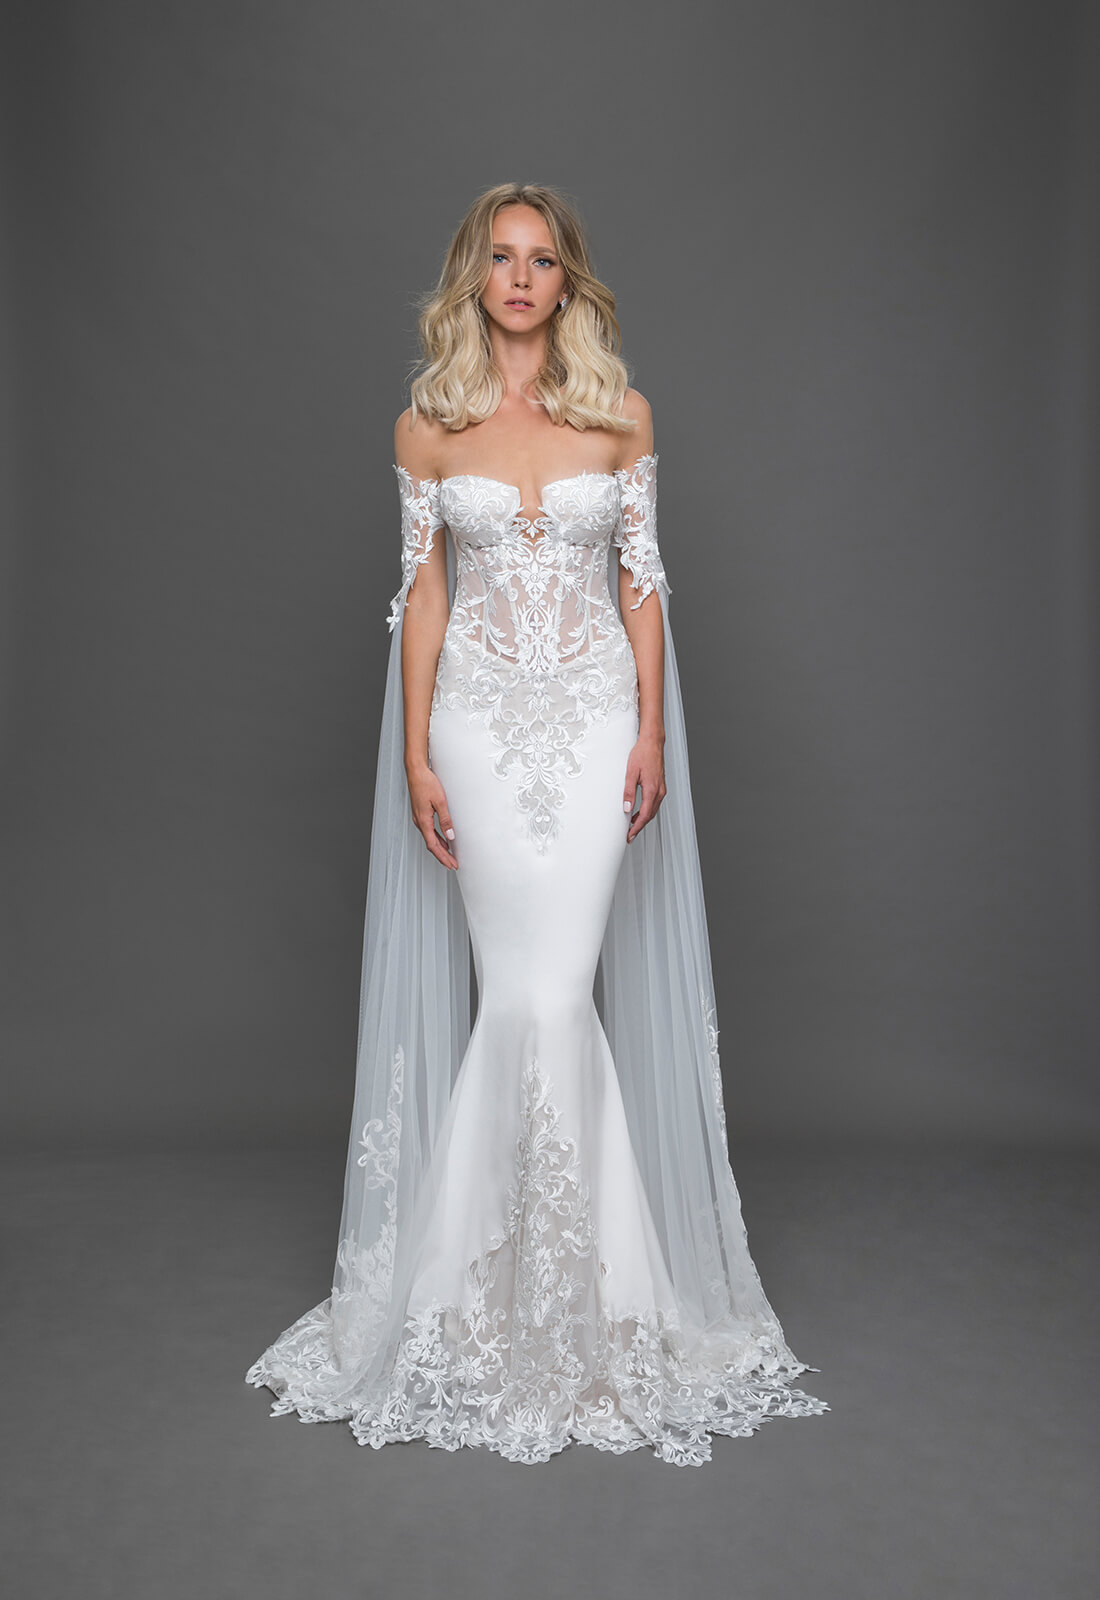 Pnina tornai for Kleinfeld mermaid wedding dresses